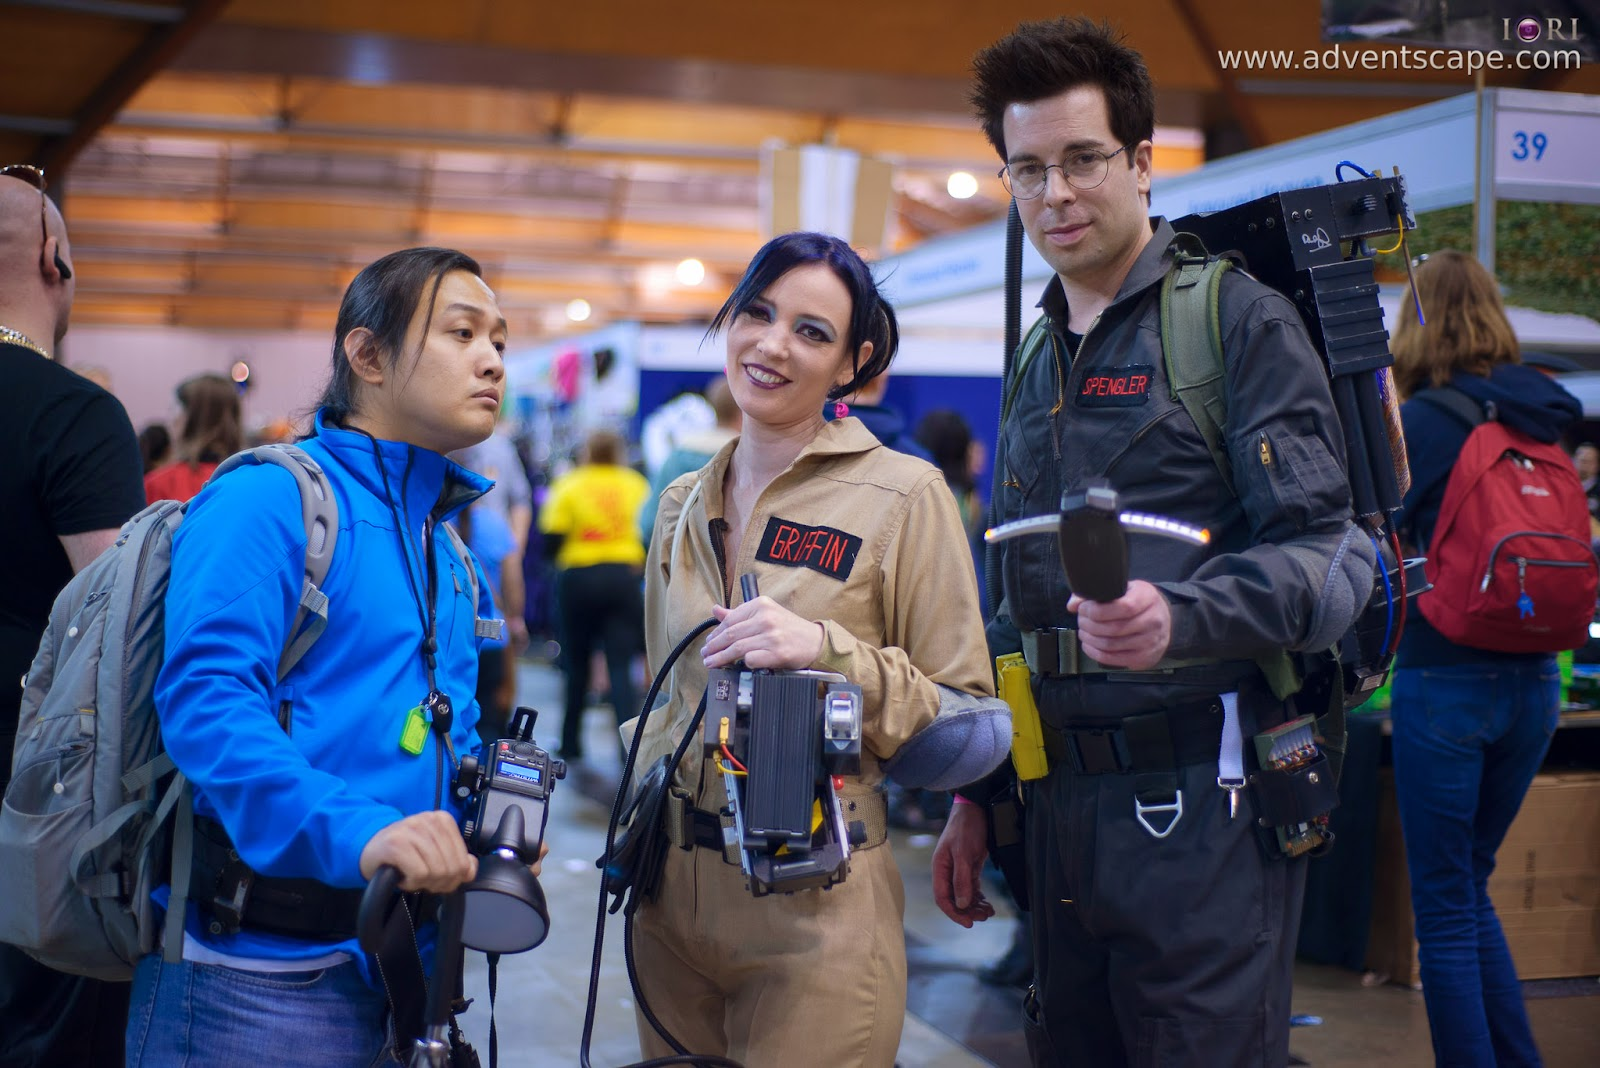 Australia, Australian Landscape Photographer, Cosplay, Homebush, New South Wales, NSW, Philip Avellana, Sydney Olympic Park, Ghostbusters, Egon, Spengler, Griffin